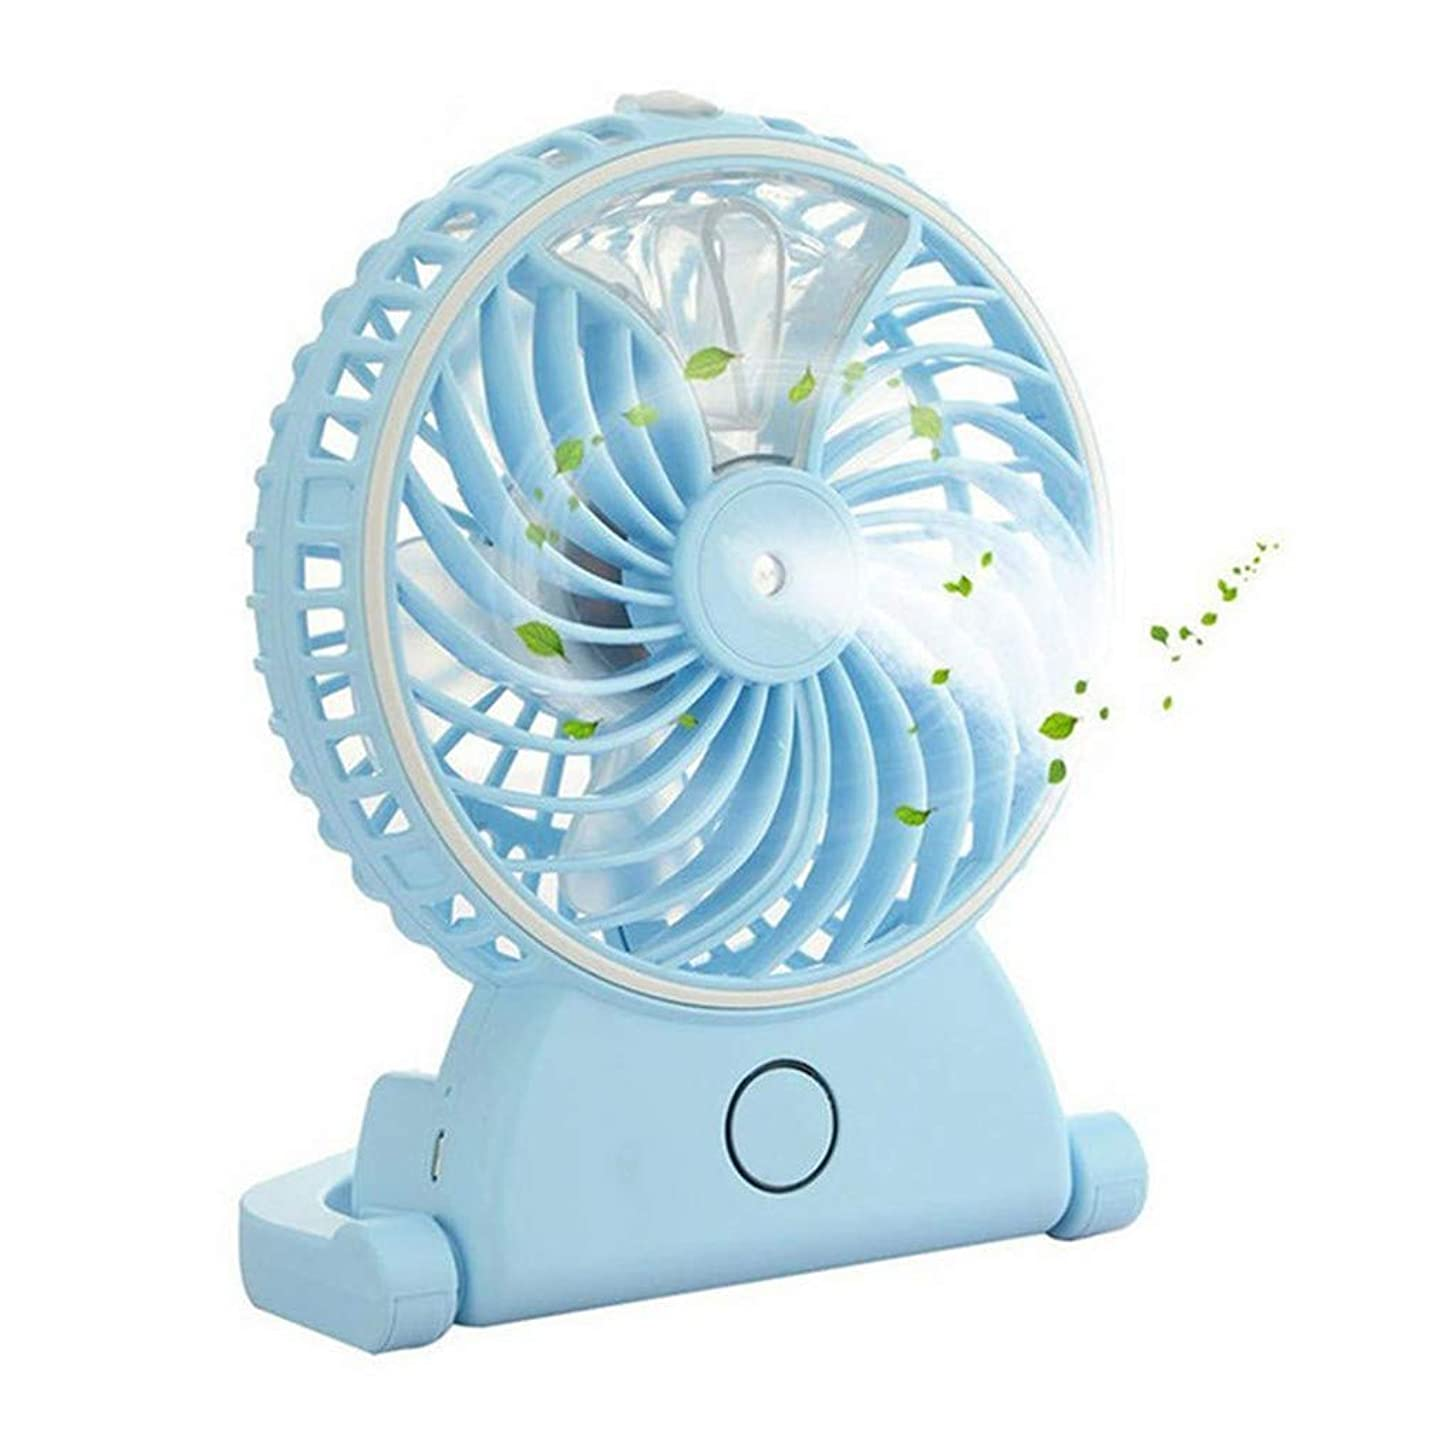 Aroma Humidifier,2019 Portable USB Misting Fan Handheld Design Rechargeable Battery Operated Fan with Water Spray Fan